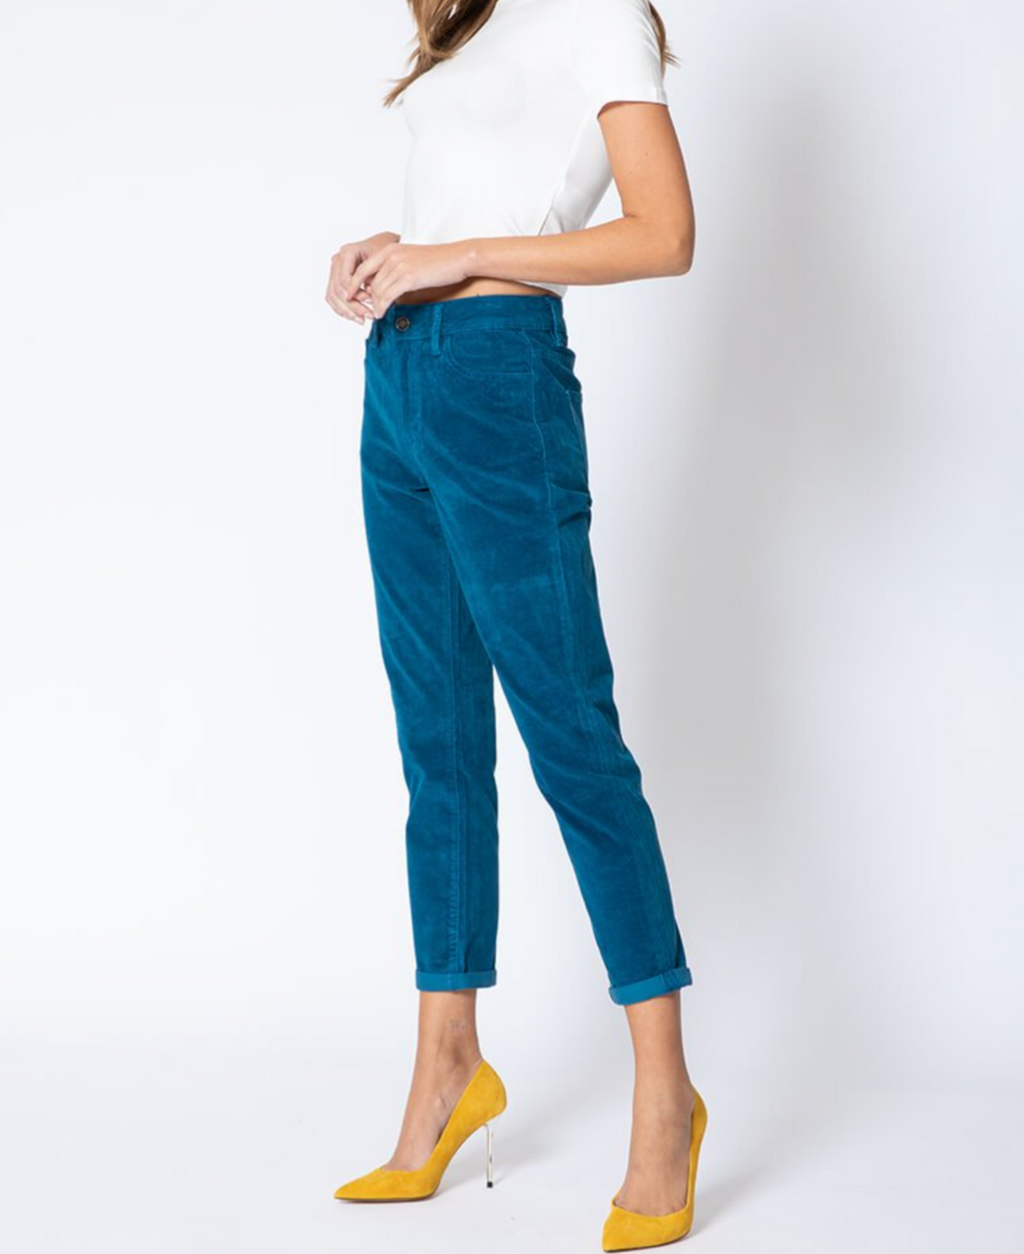 Emily Aqua Blue High Rise Corduroy Pants